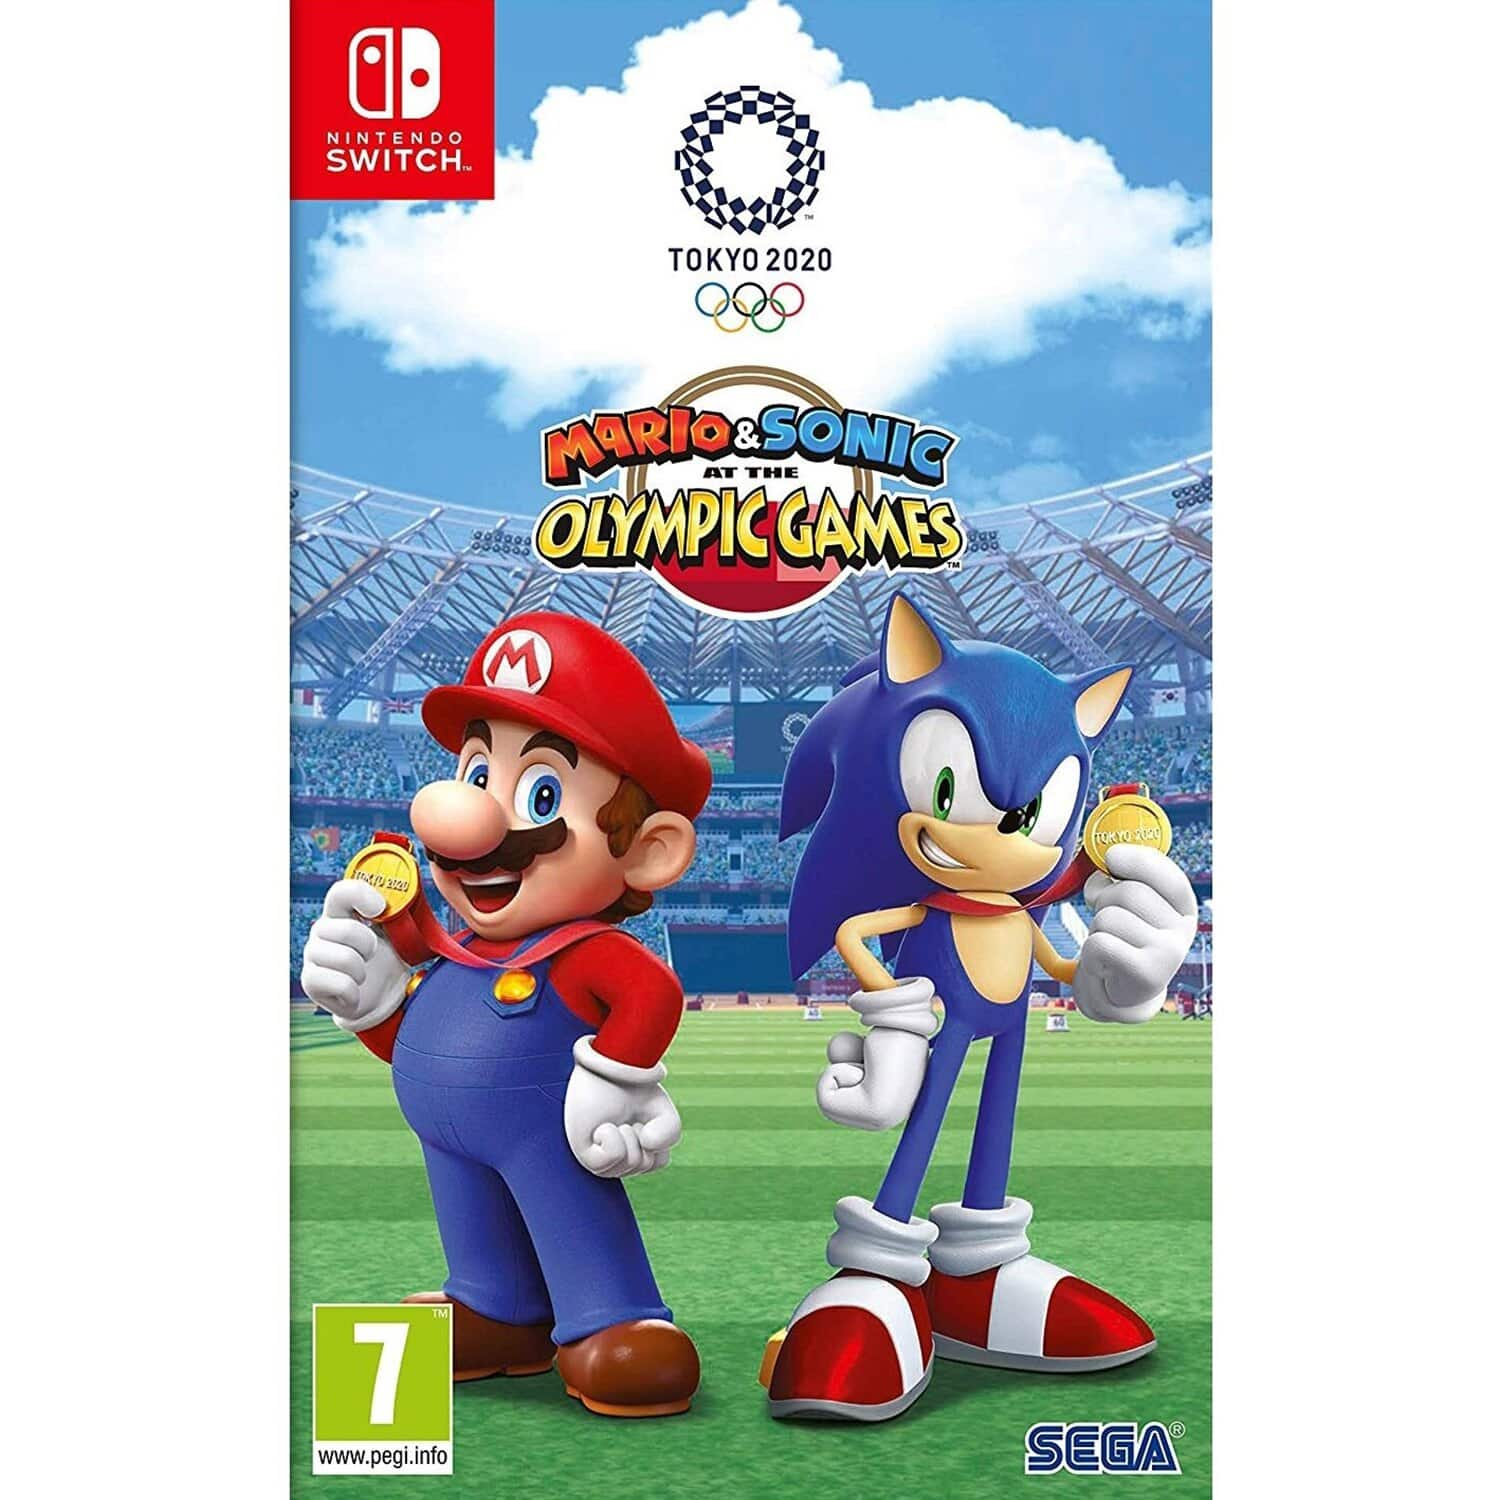 Mario & Sonic at the Olympic Games Tokyo 2020 (Switch) / Legend of Zelda Link's Awakening (Switch) $53.75 + $10.60 RSP Back + FS